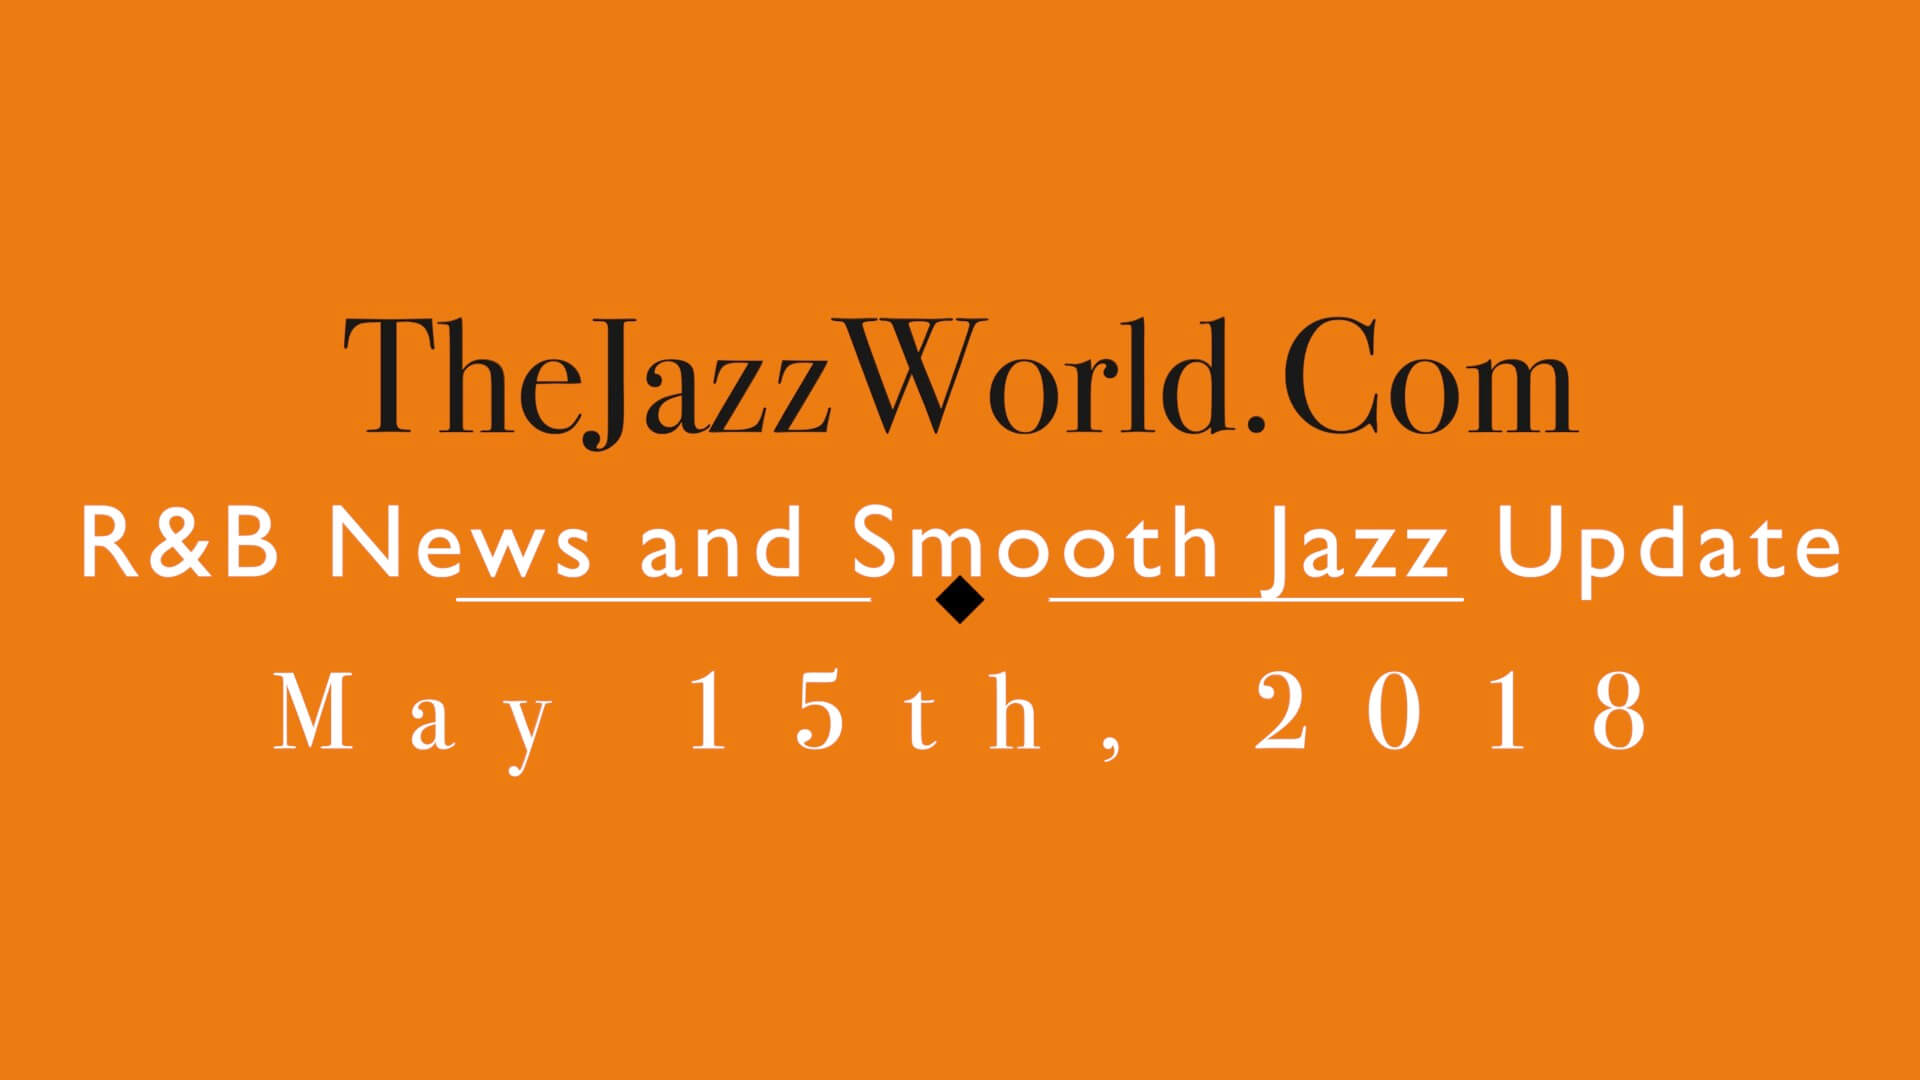 Latest R&B News and Smooth Jazz Update May 15th